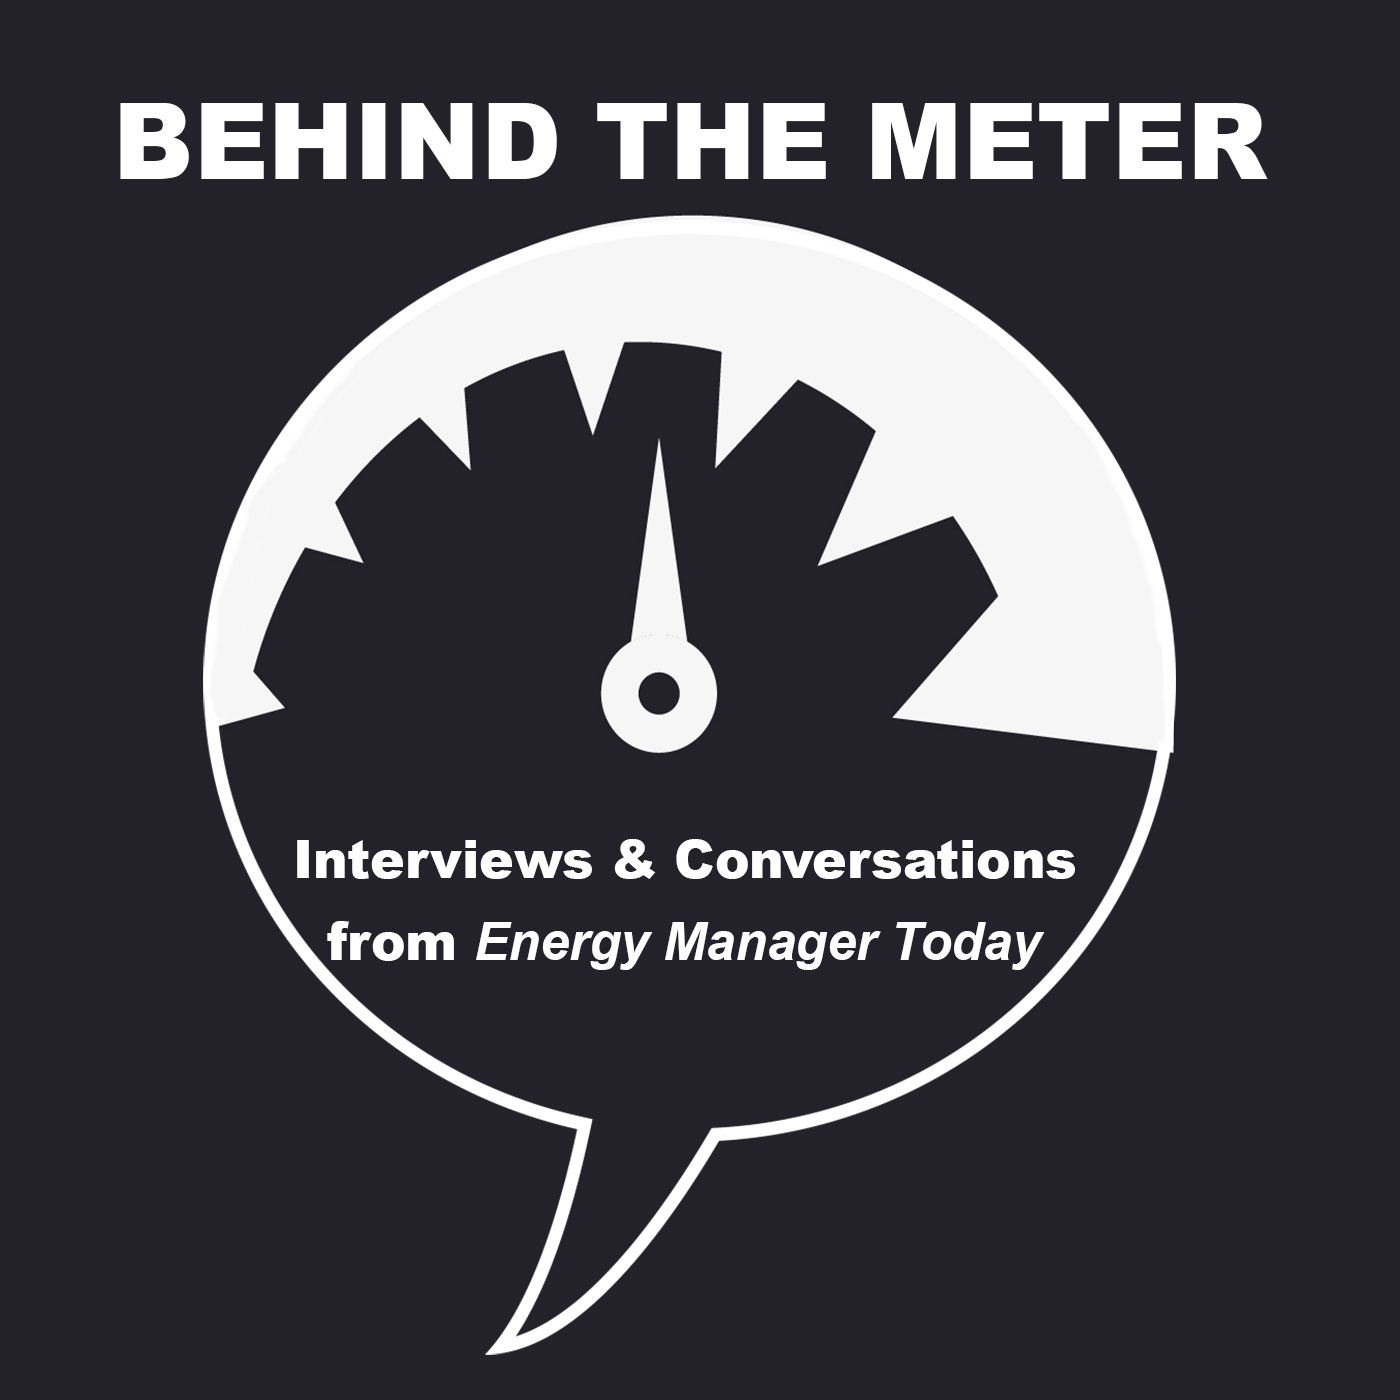 behindthemeterpodcast